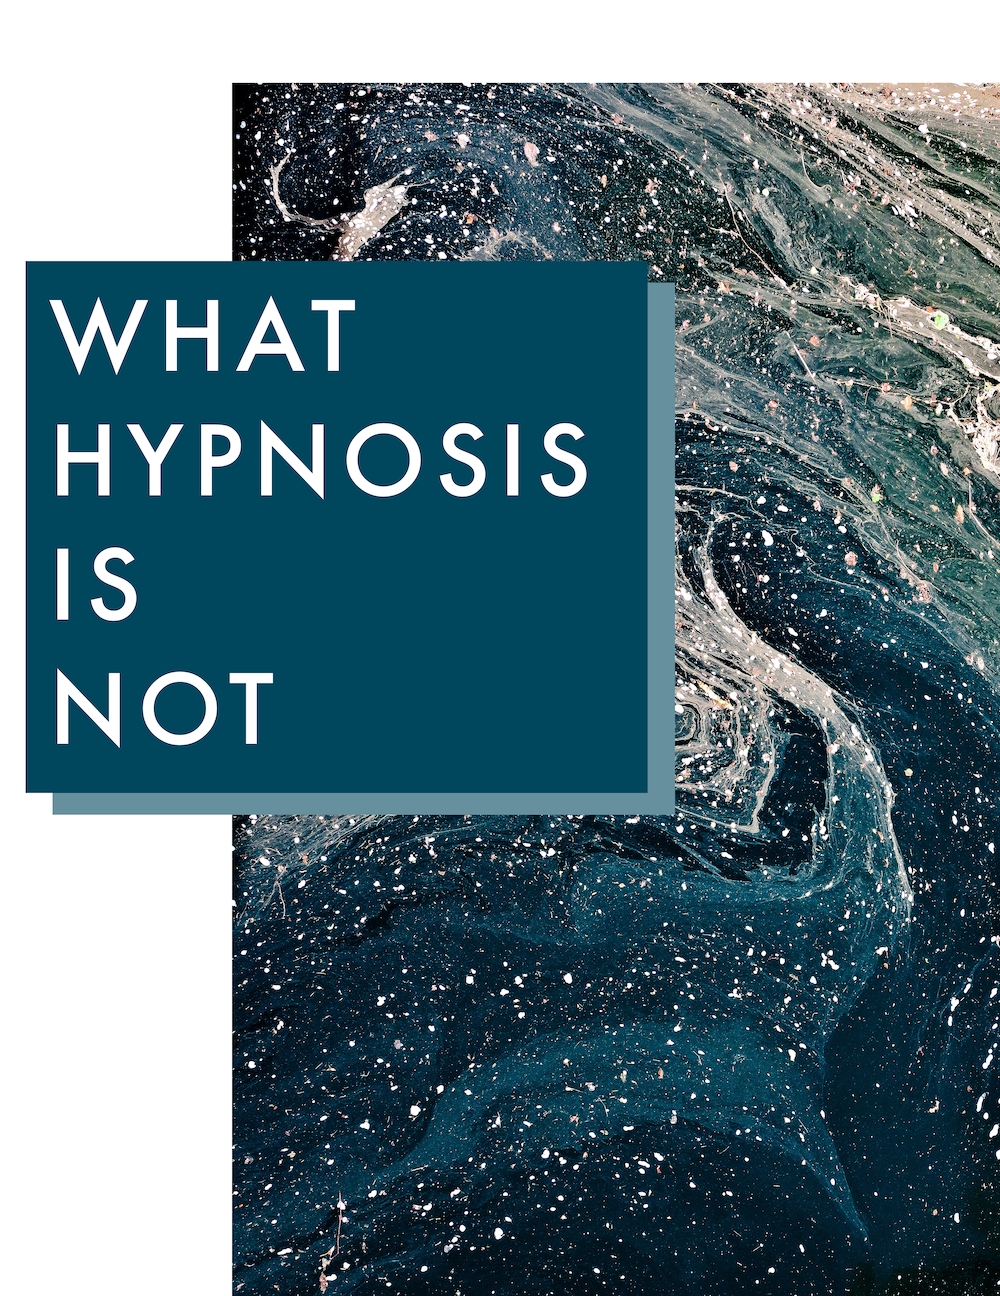 what hypnosis is not.jpg